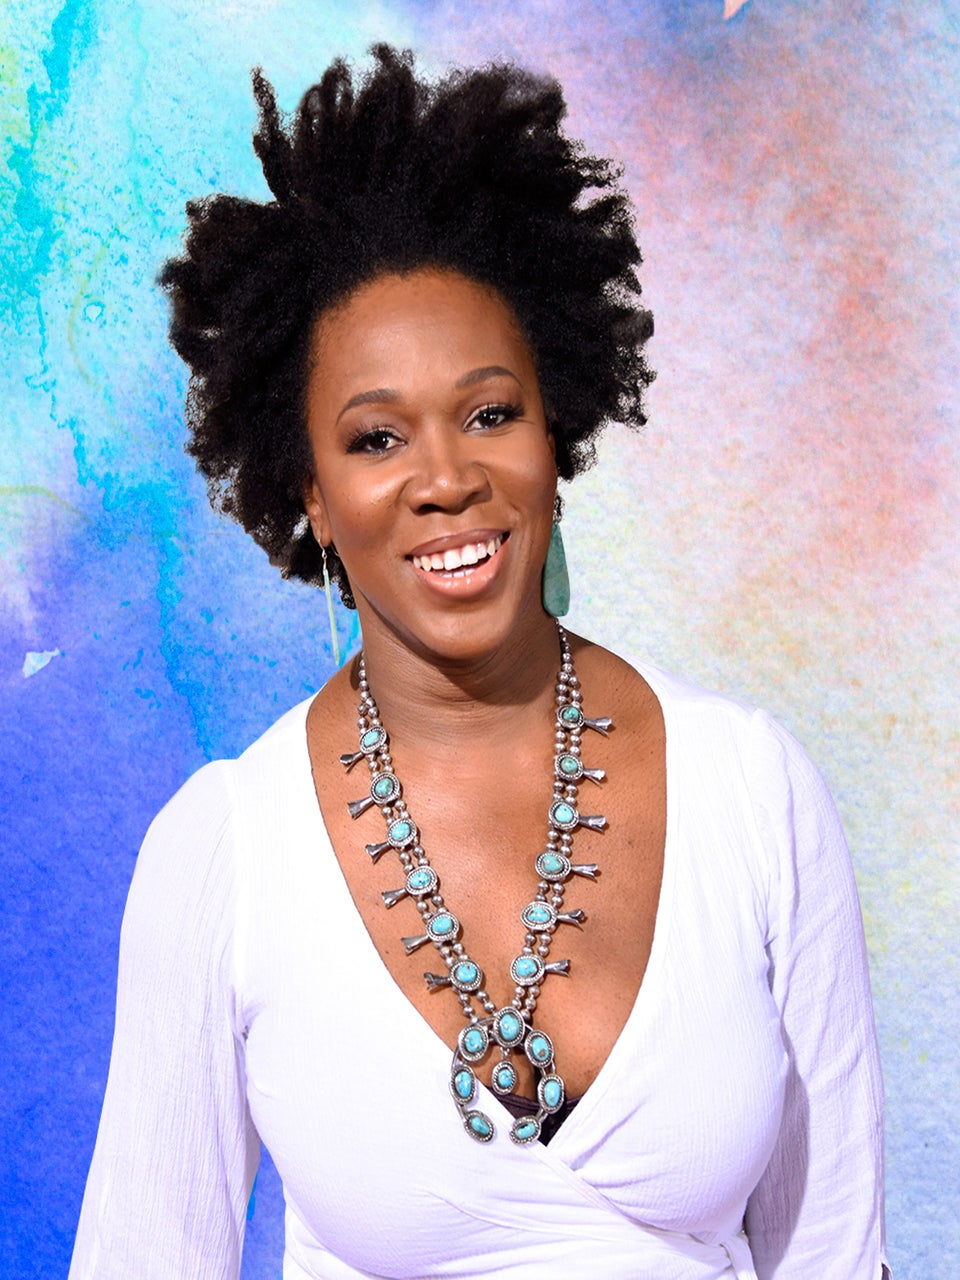 EXCLUSIVE: India Arie's New Song 'Breathe' (Inspired by #BlackLivesMatter) Is Right on Time!